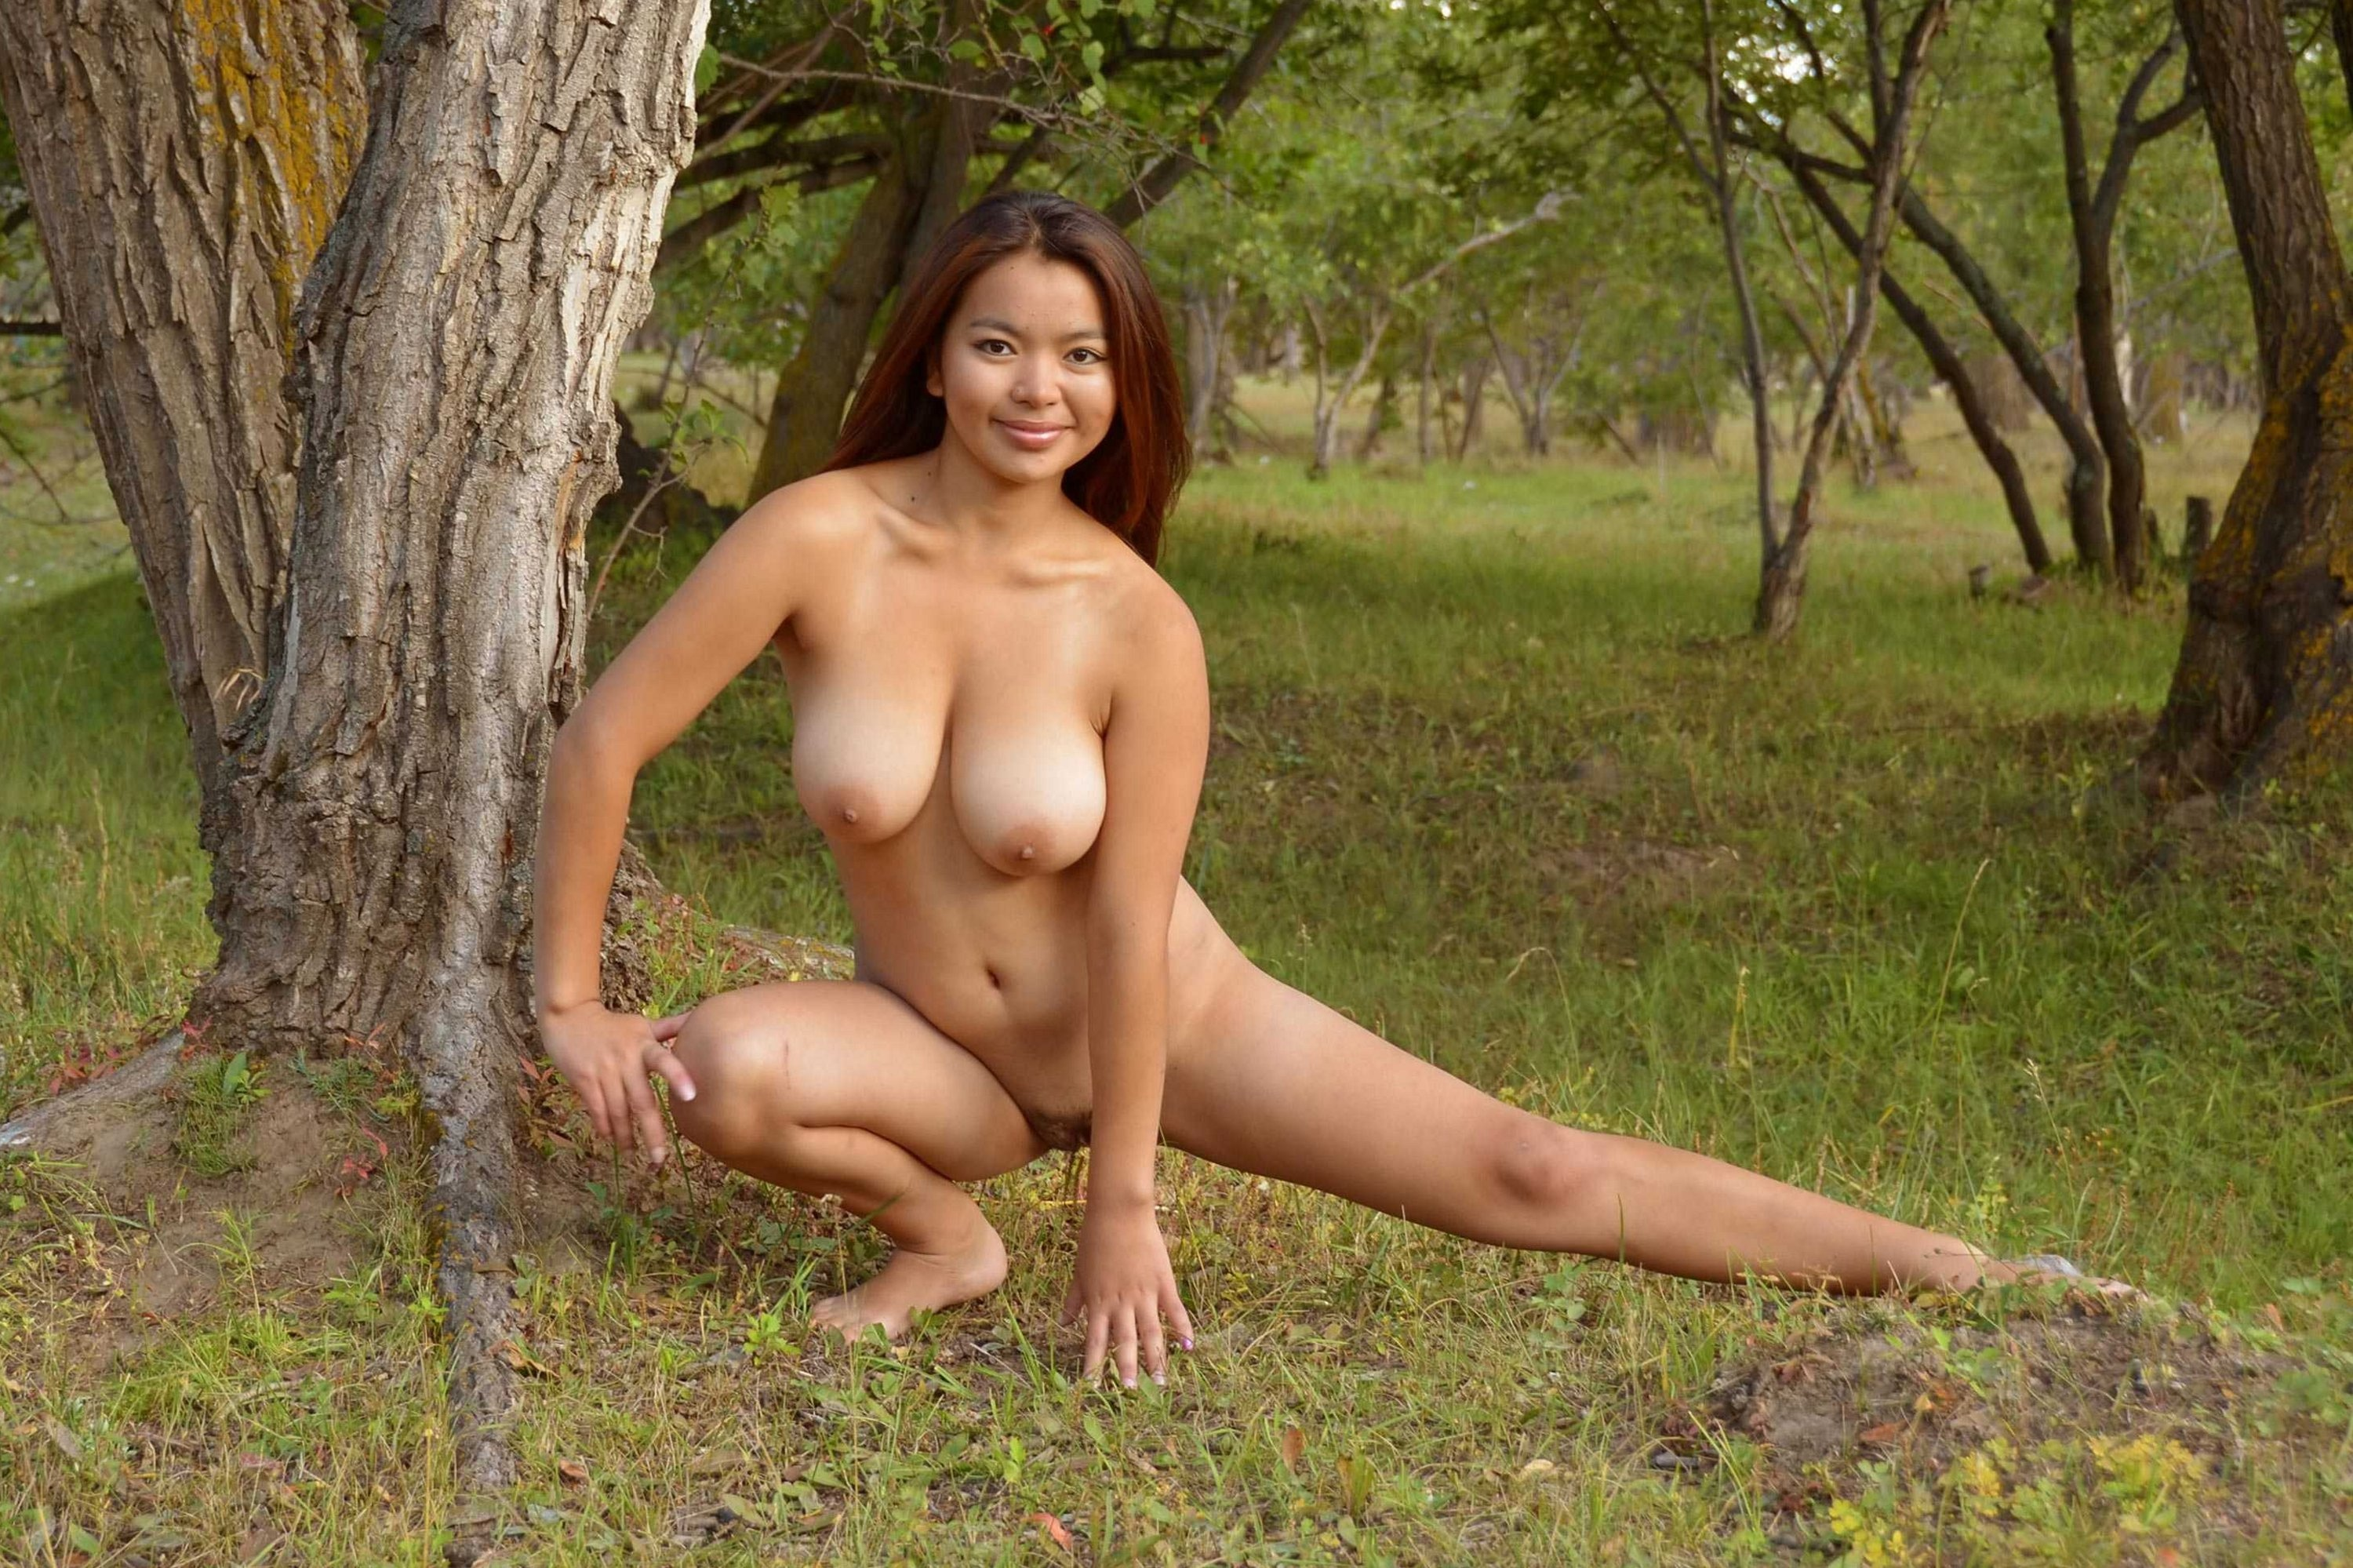 Wallpaper aynur, brunette, exotic, nude, naked, girls, sexy, amateur,  model, outdoor, asian desktop wallpaper - Asian Girls - ID: 72531 -  ftopx.com